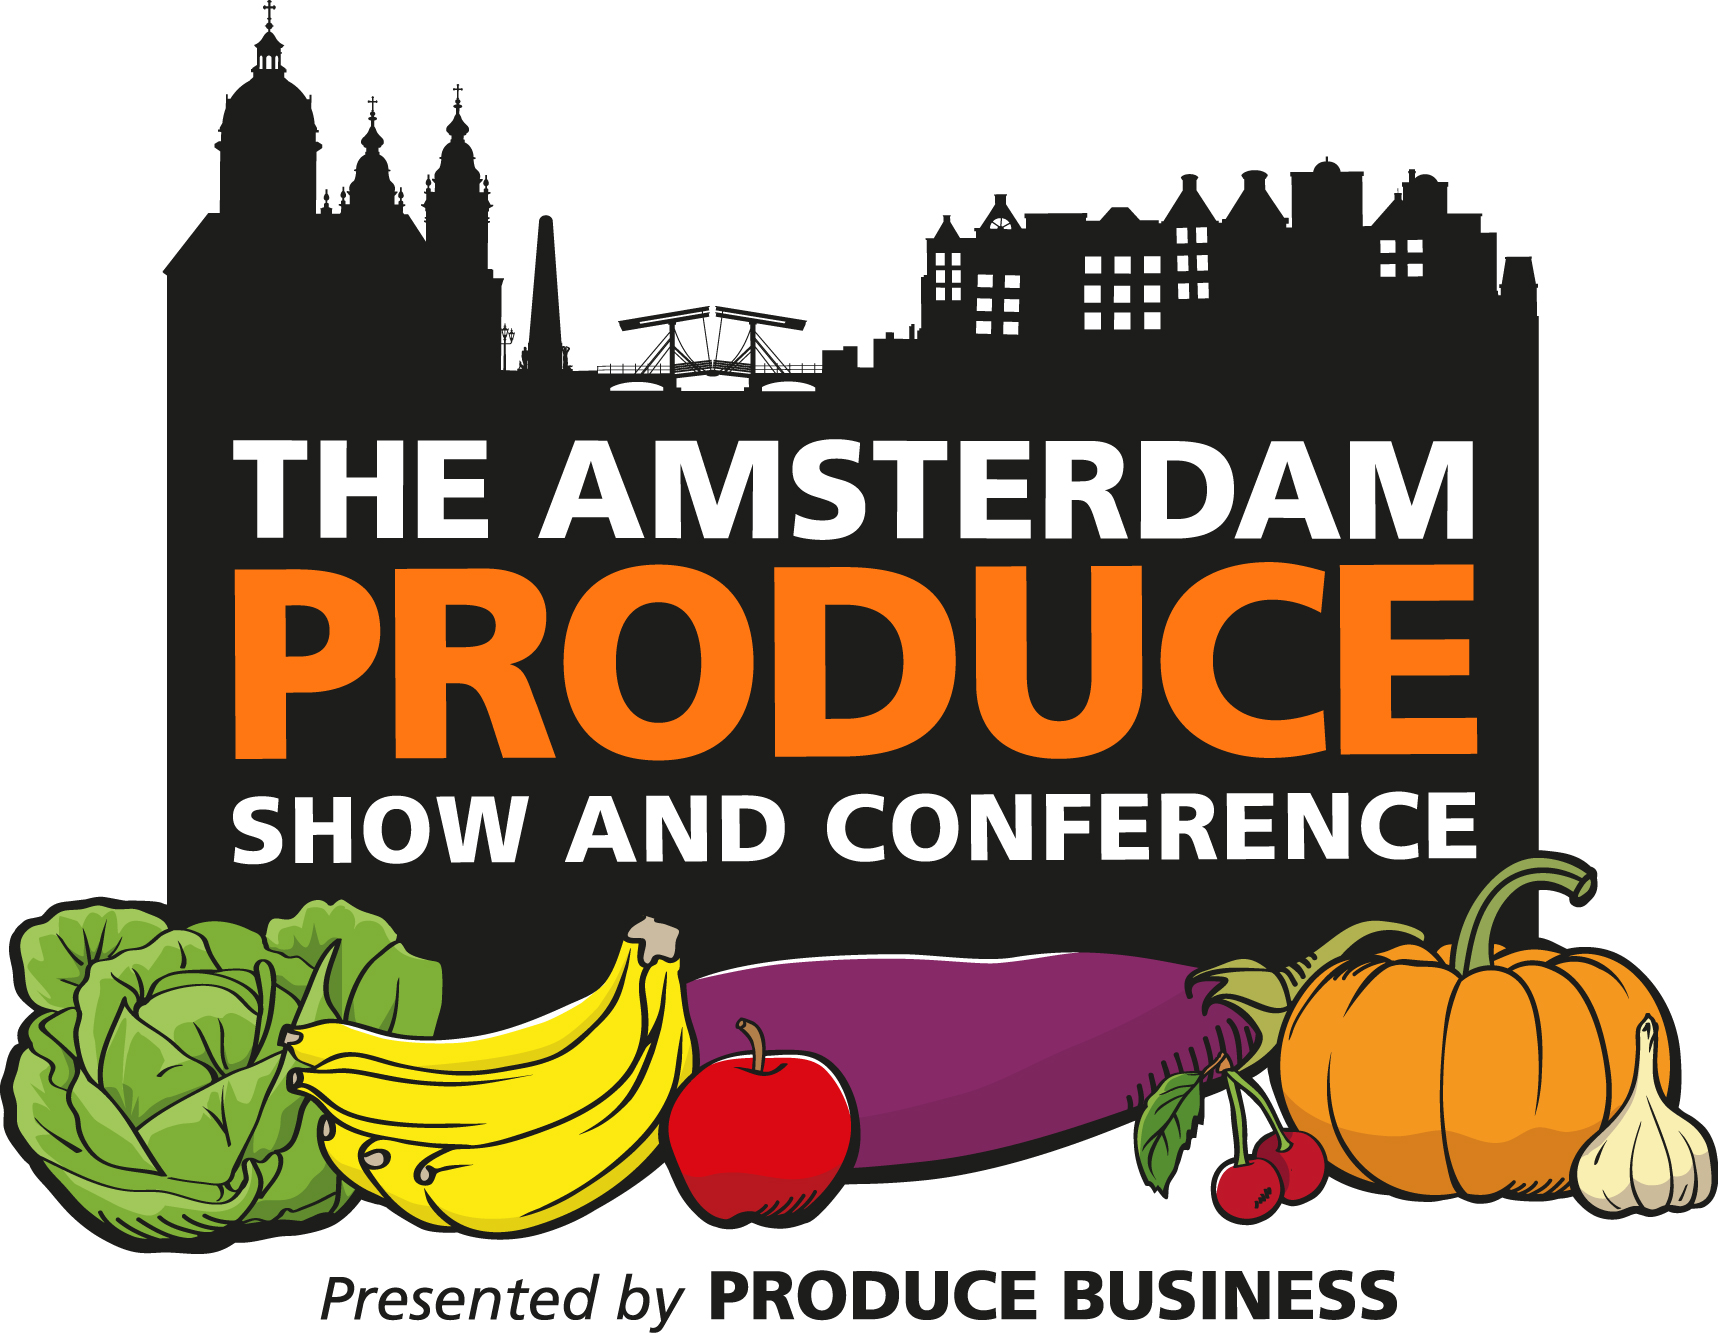 The London Produce Show and Conference will make its debut in Holland from November 2-4 at the Westergasfabriek conference venue in Amsterdam.